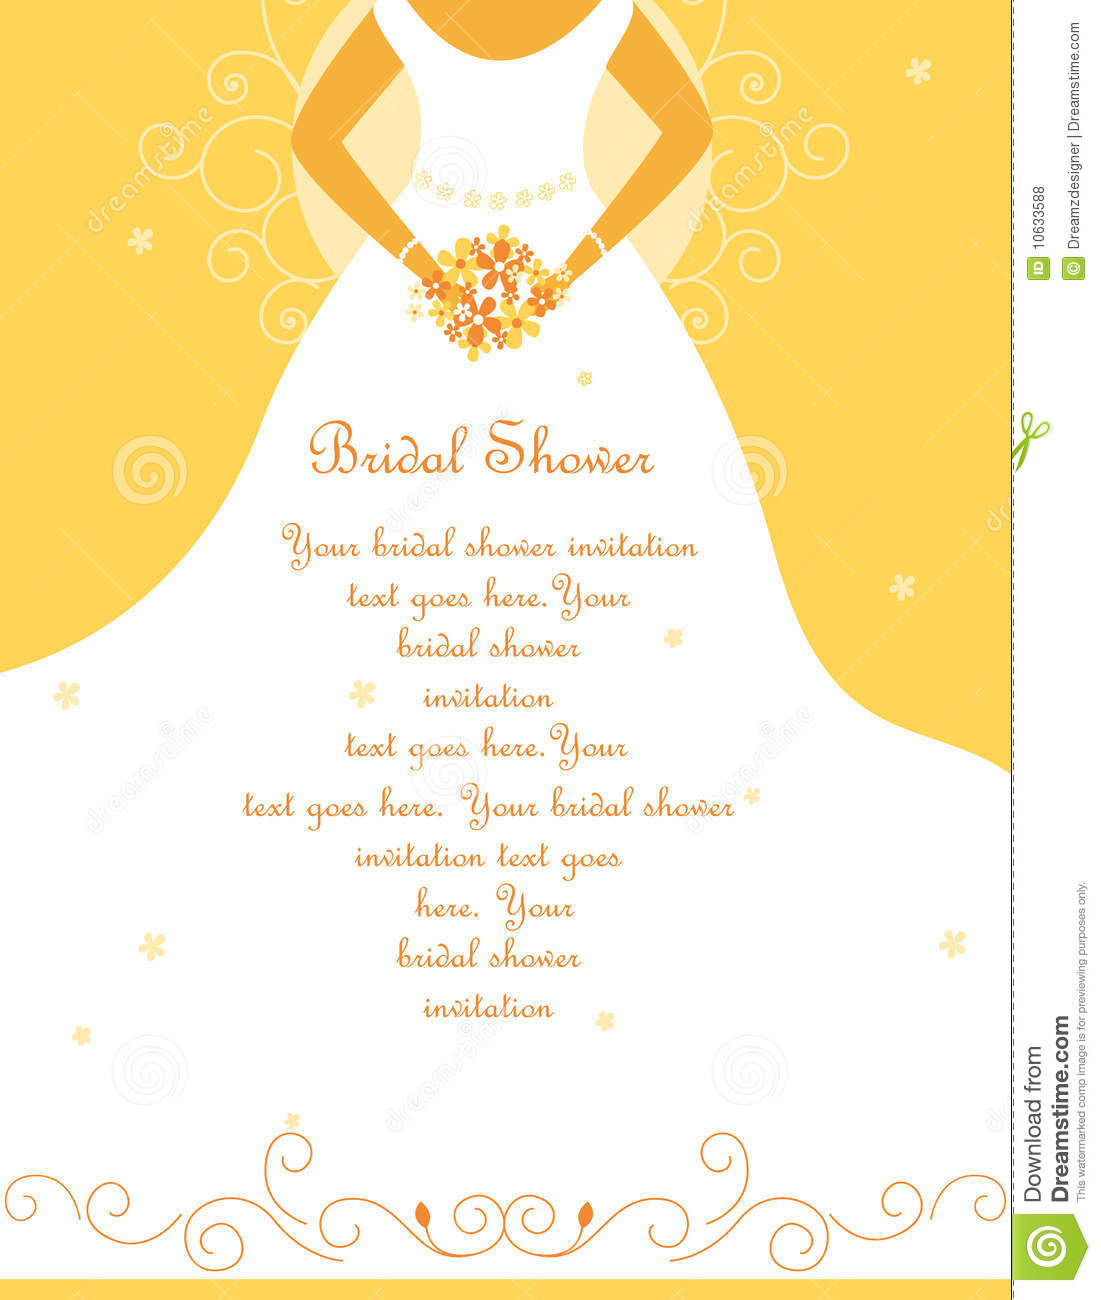 Royalty Free Stock Photos: Bridal shower / Wedding invitation